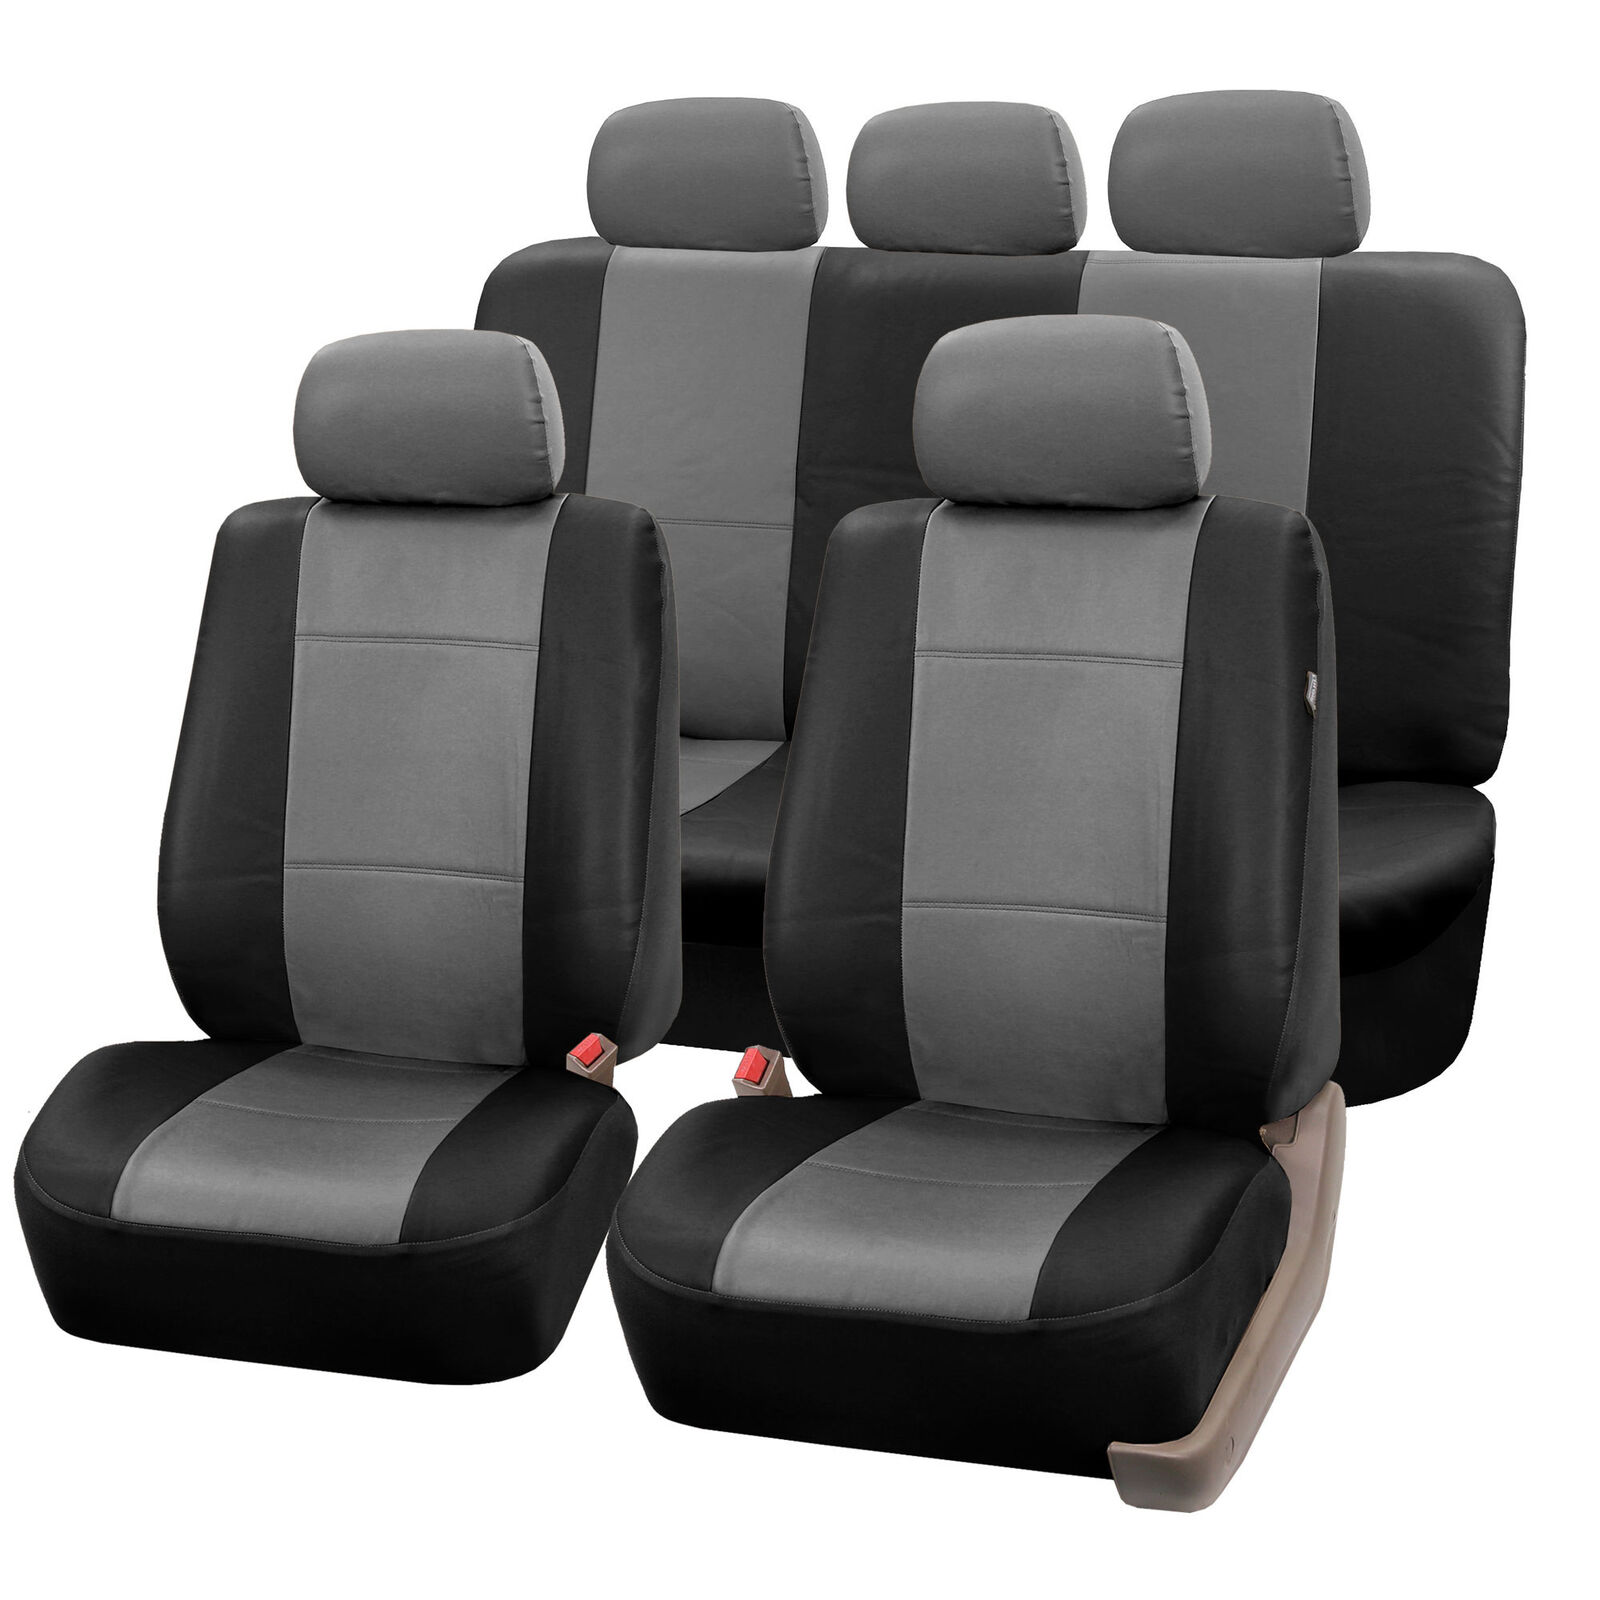 Synthetic Leather Car Seat Covers for Auto}